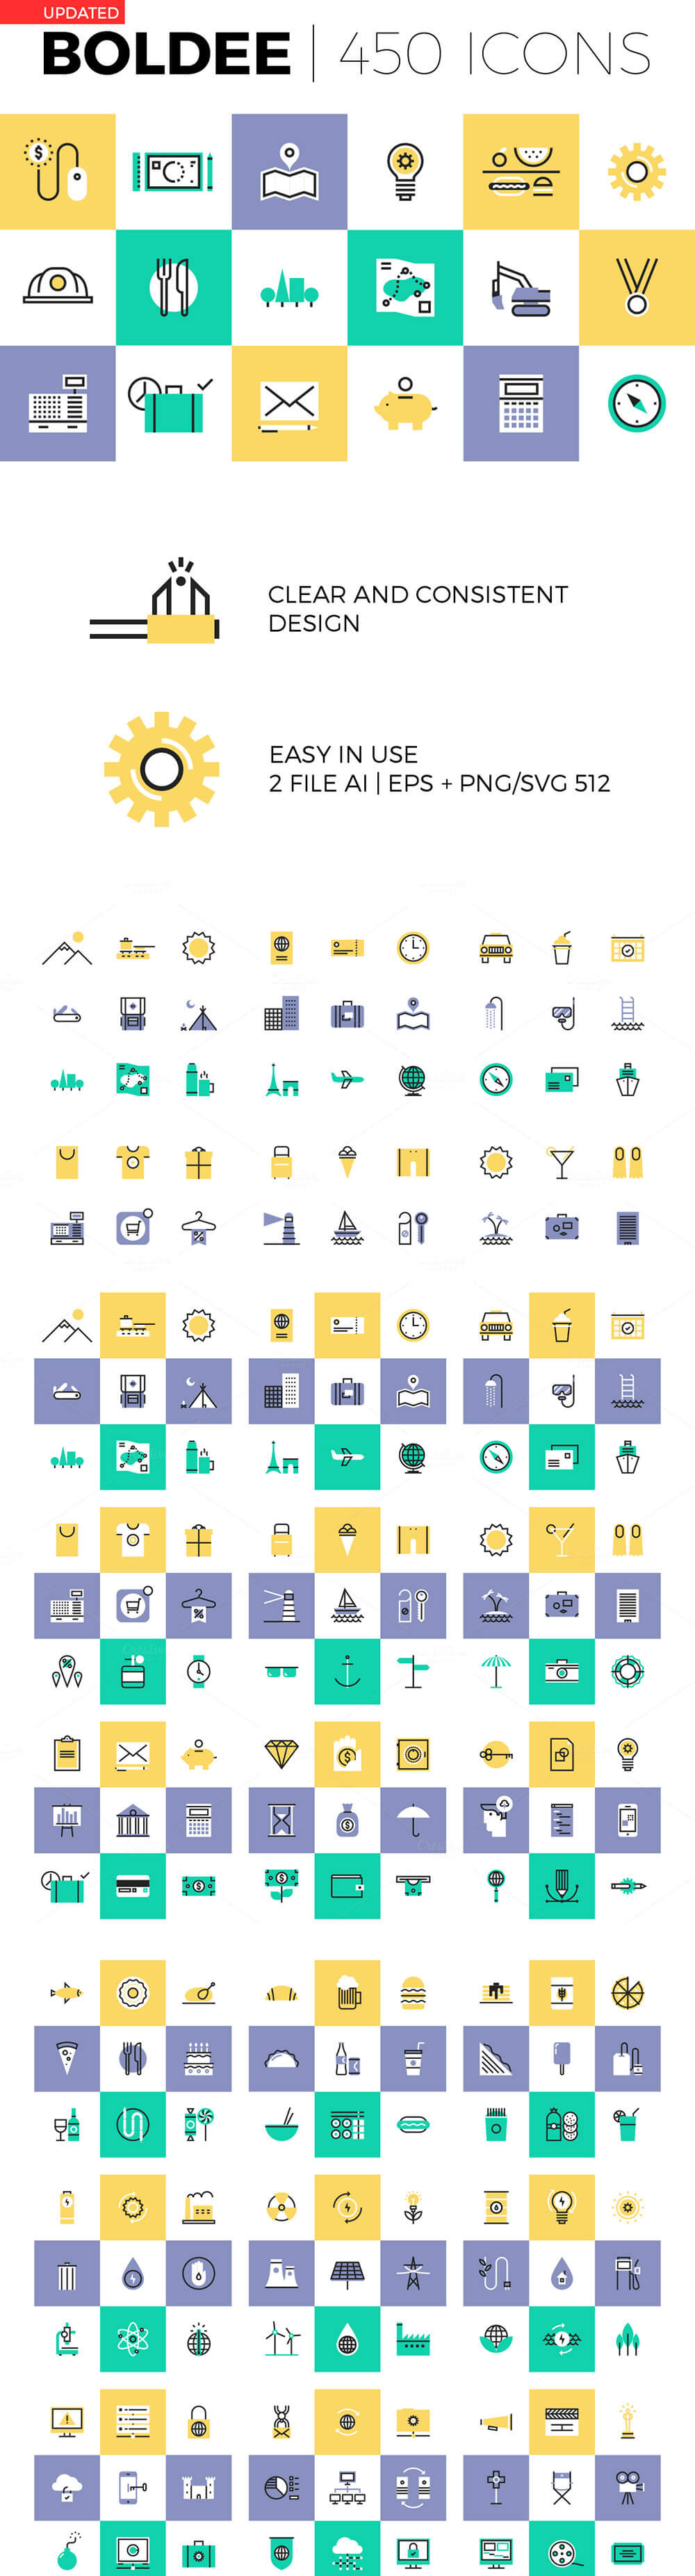 boldee_flat_icons_pictogram_preview-o